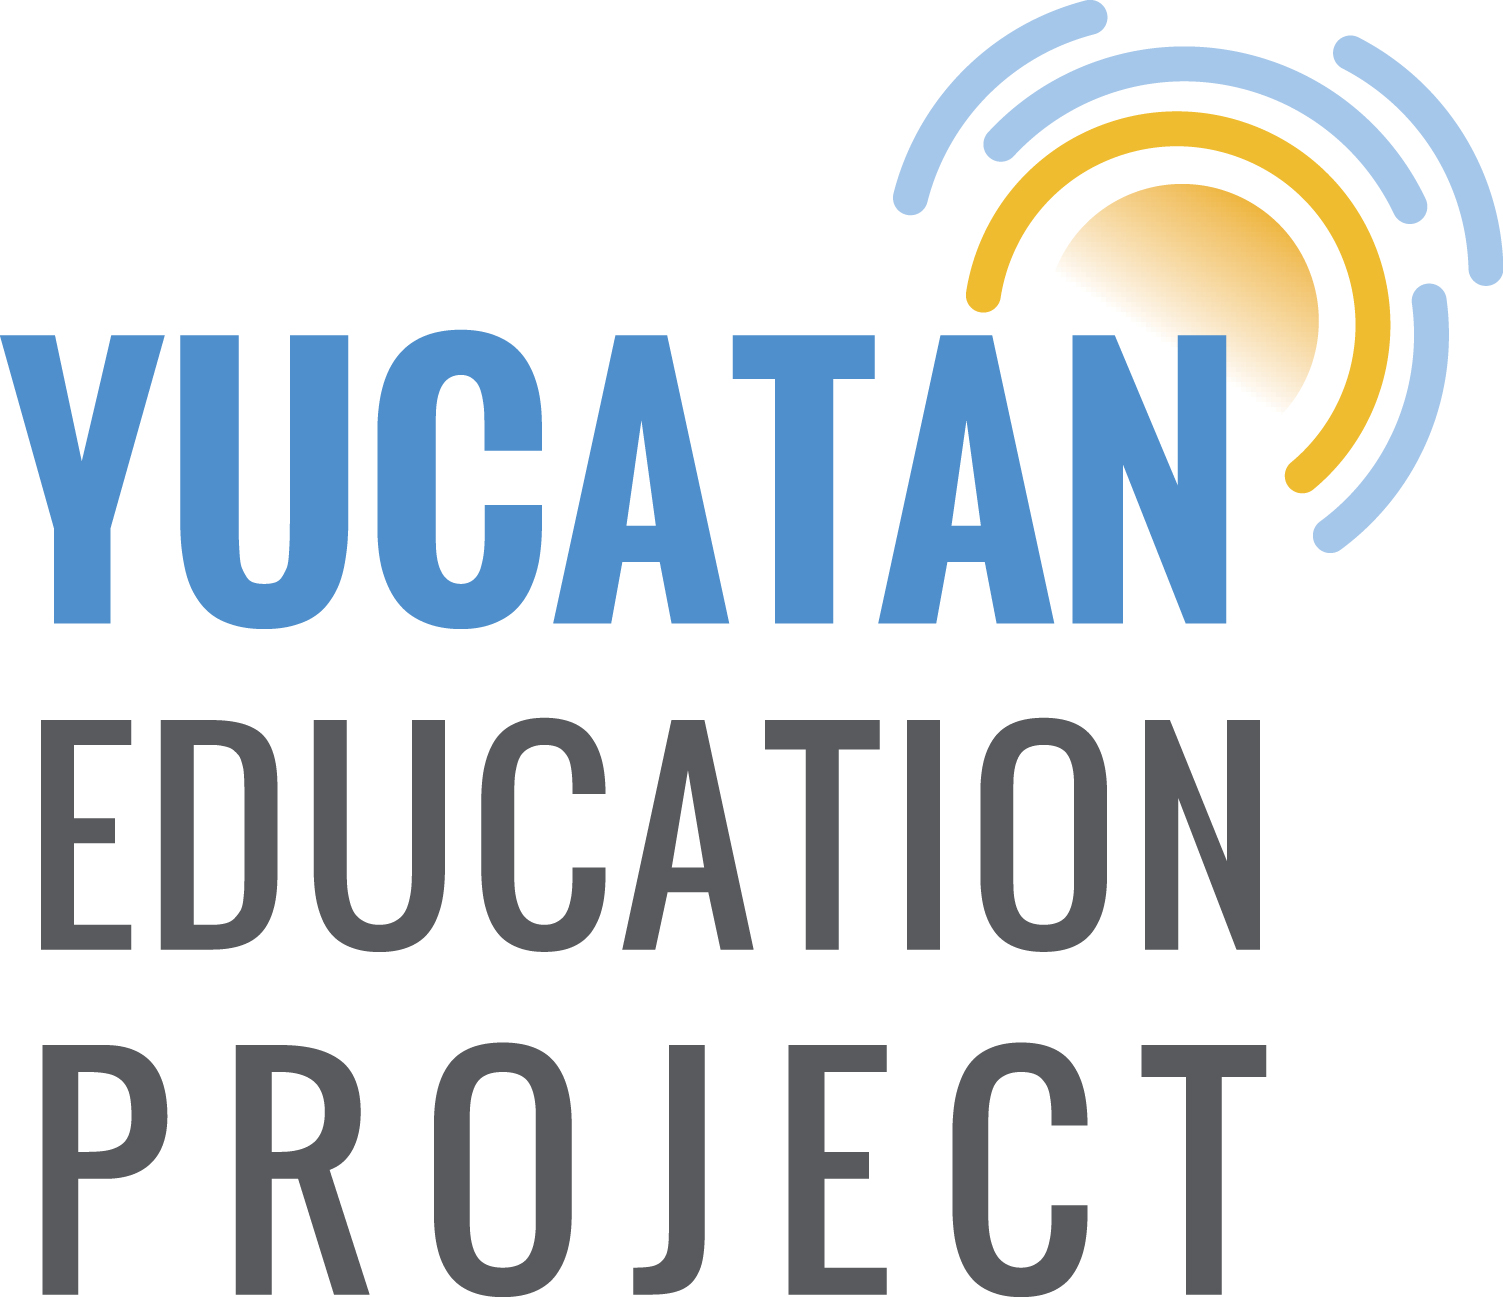 The Yucatan Education Project